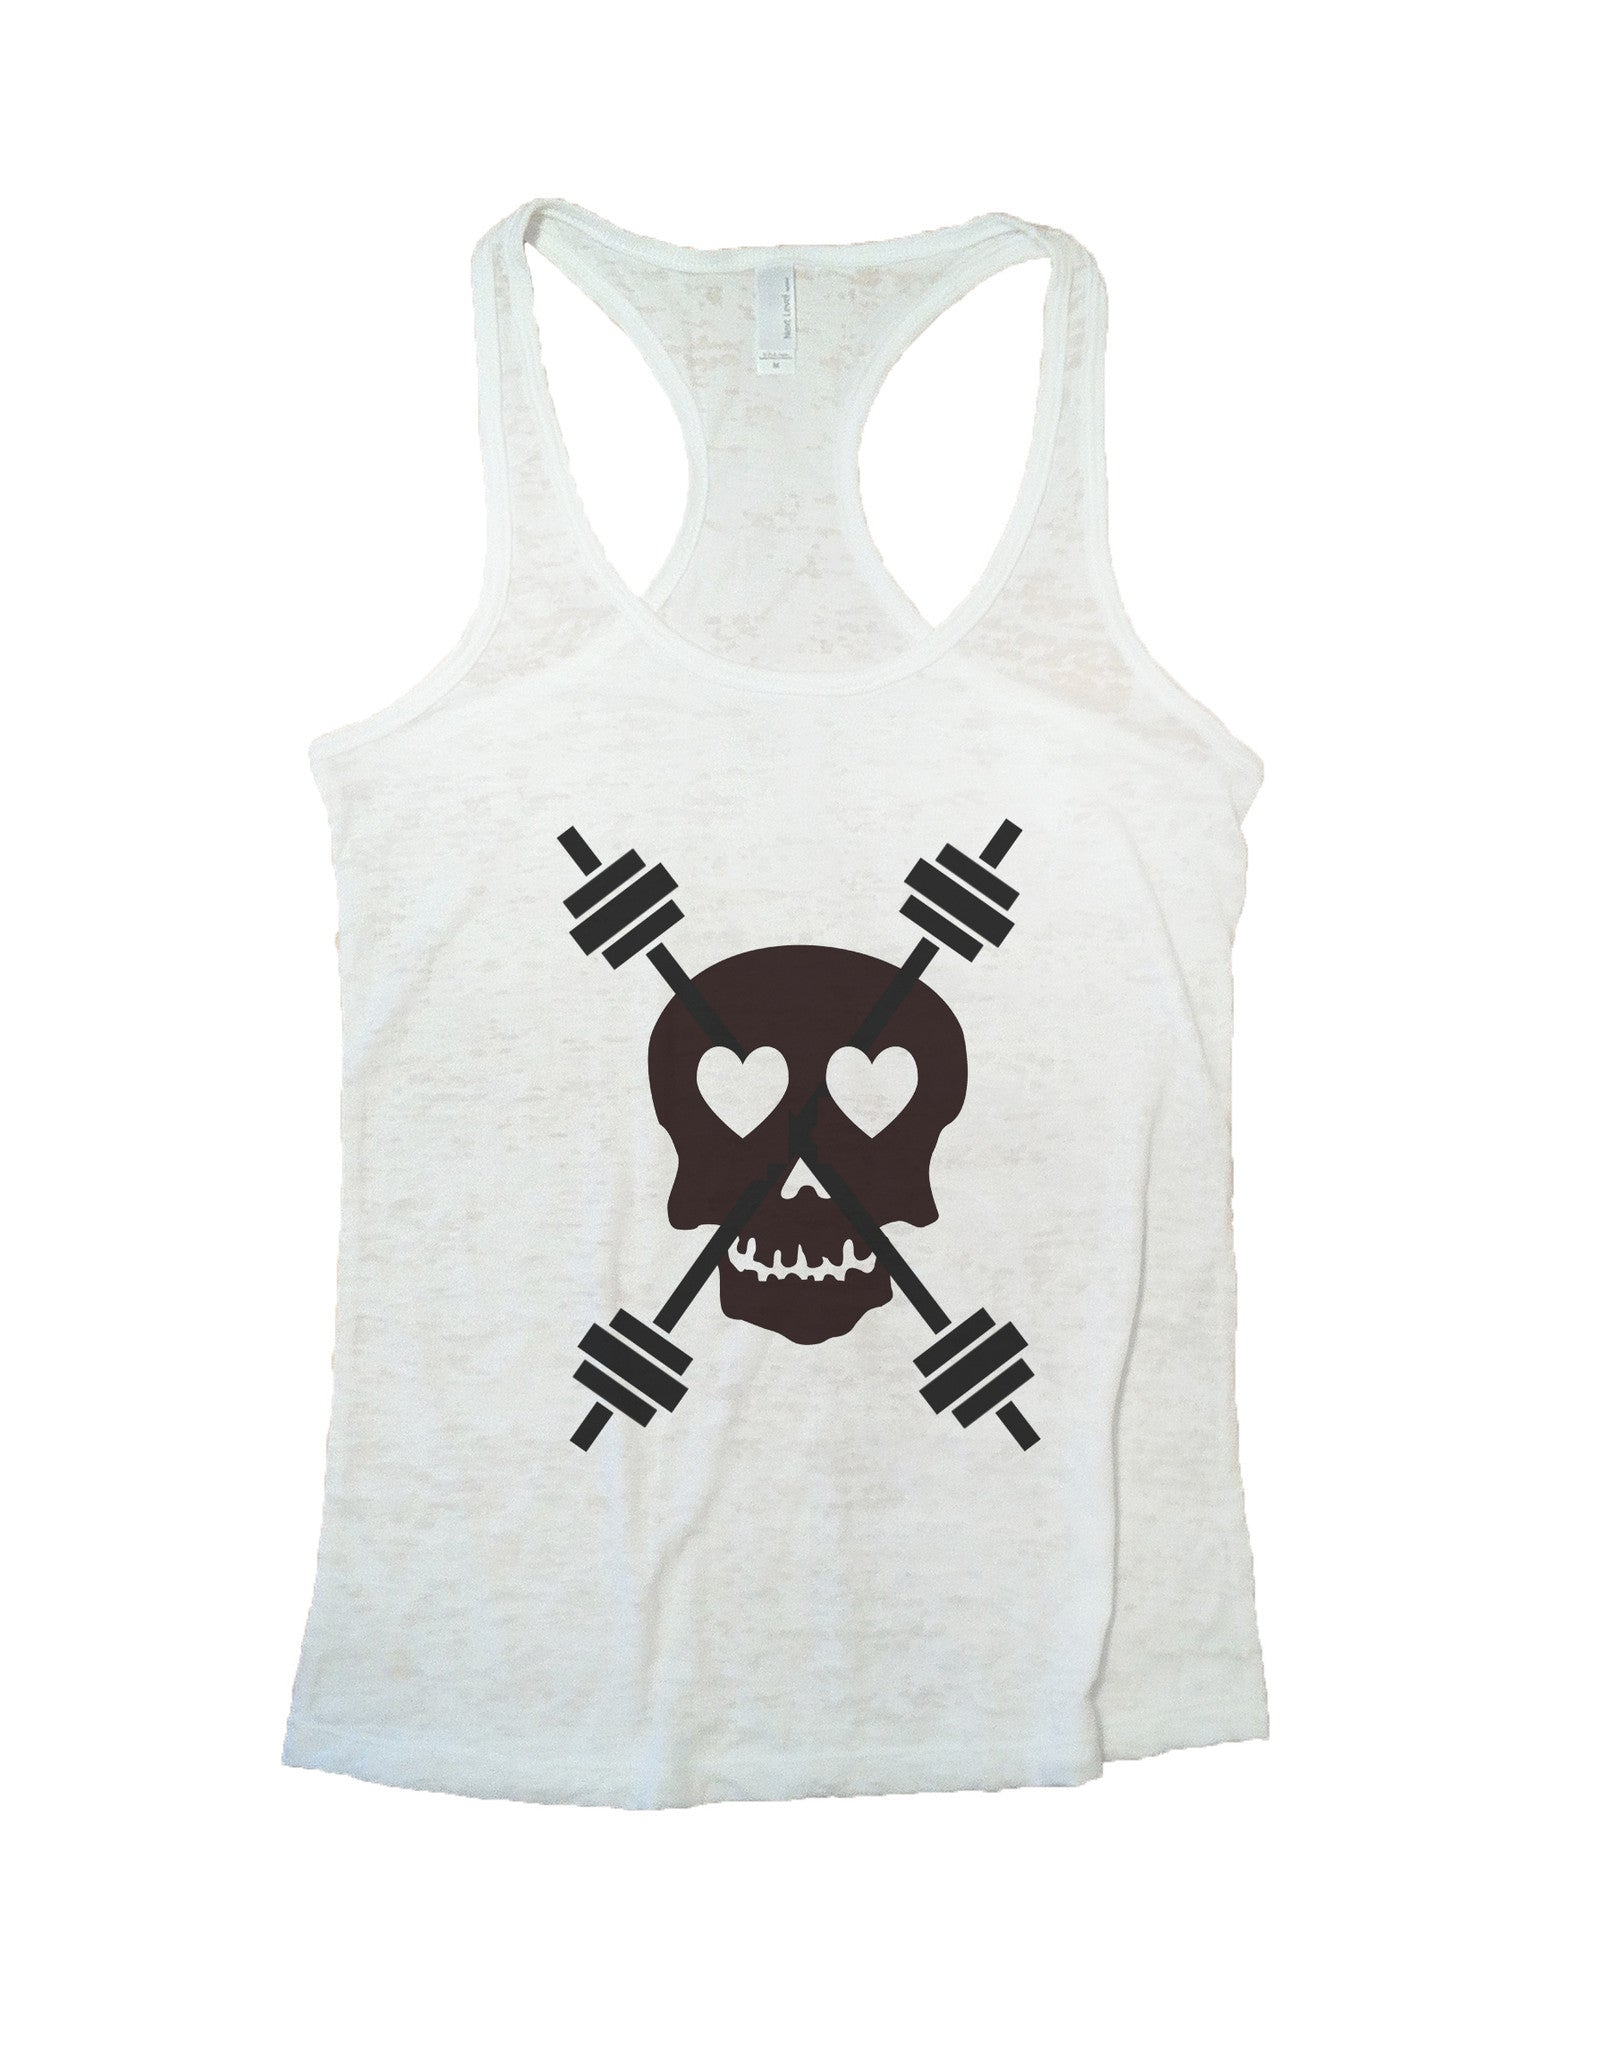 Skull And Weight Bars Burnout Tank Top By BurnoutTankTops.com - 653 - Funny Shirts Tank Tops Burnouts and Triblends  - 5